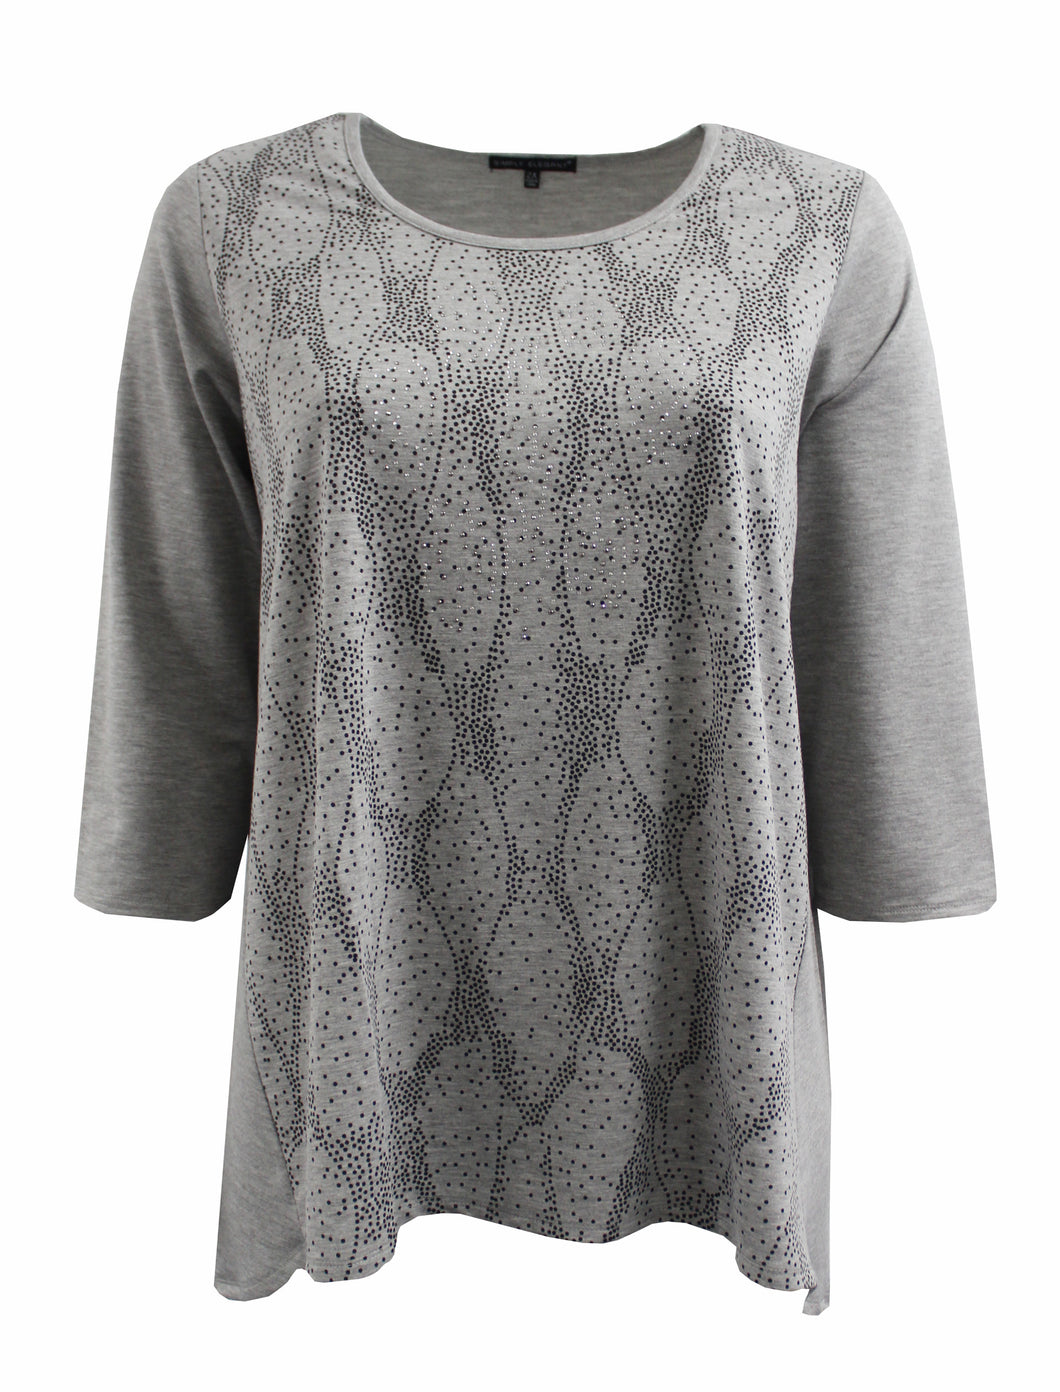 Grey Sweater-Like Round Neck Top